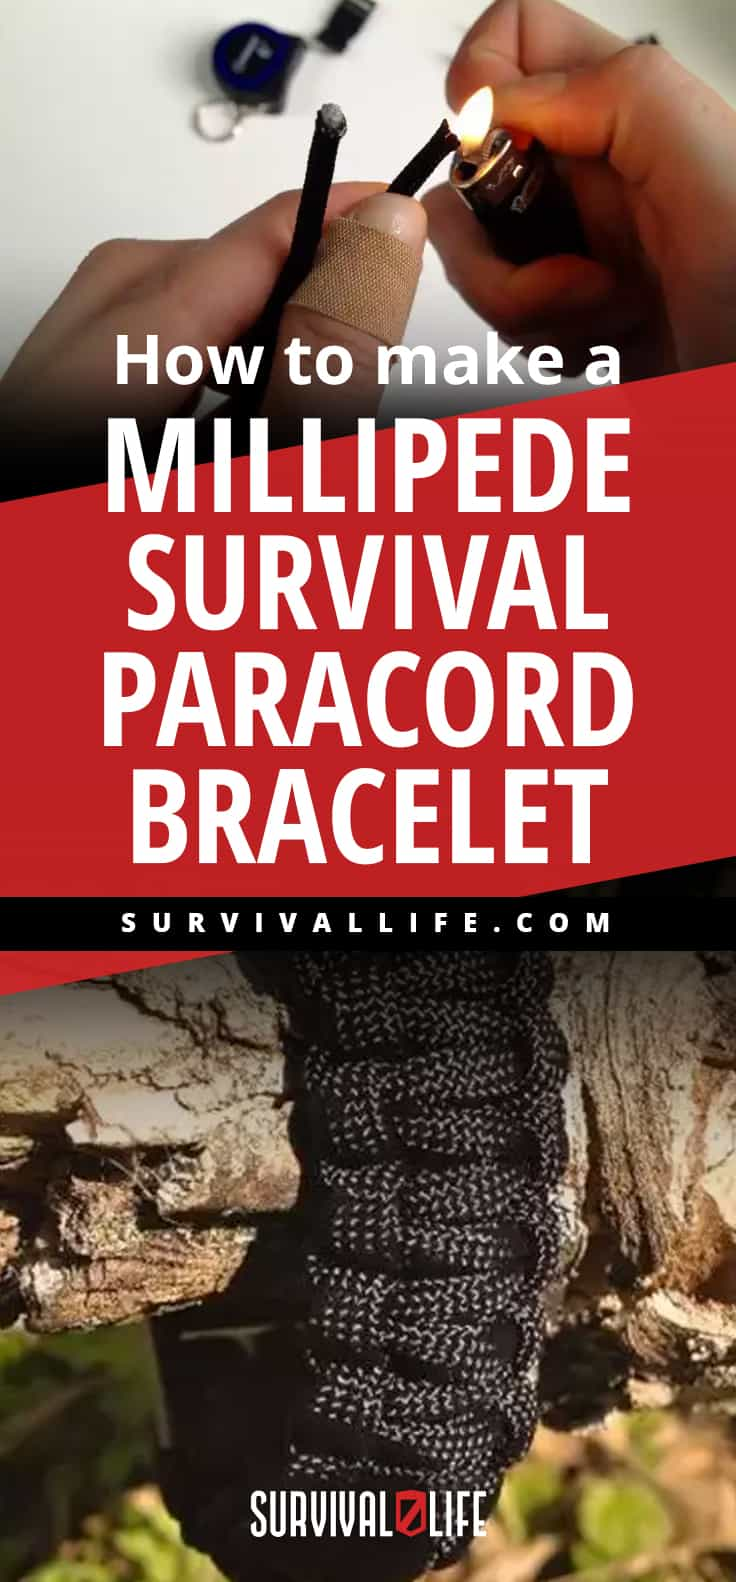 Placard | How to Make a Millipede Survival Paracord Bracelet